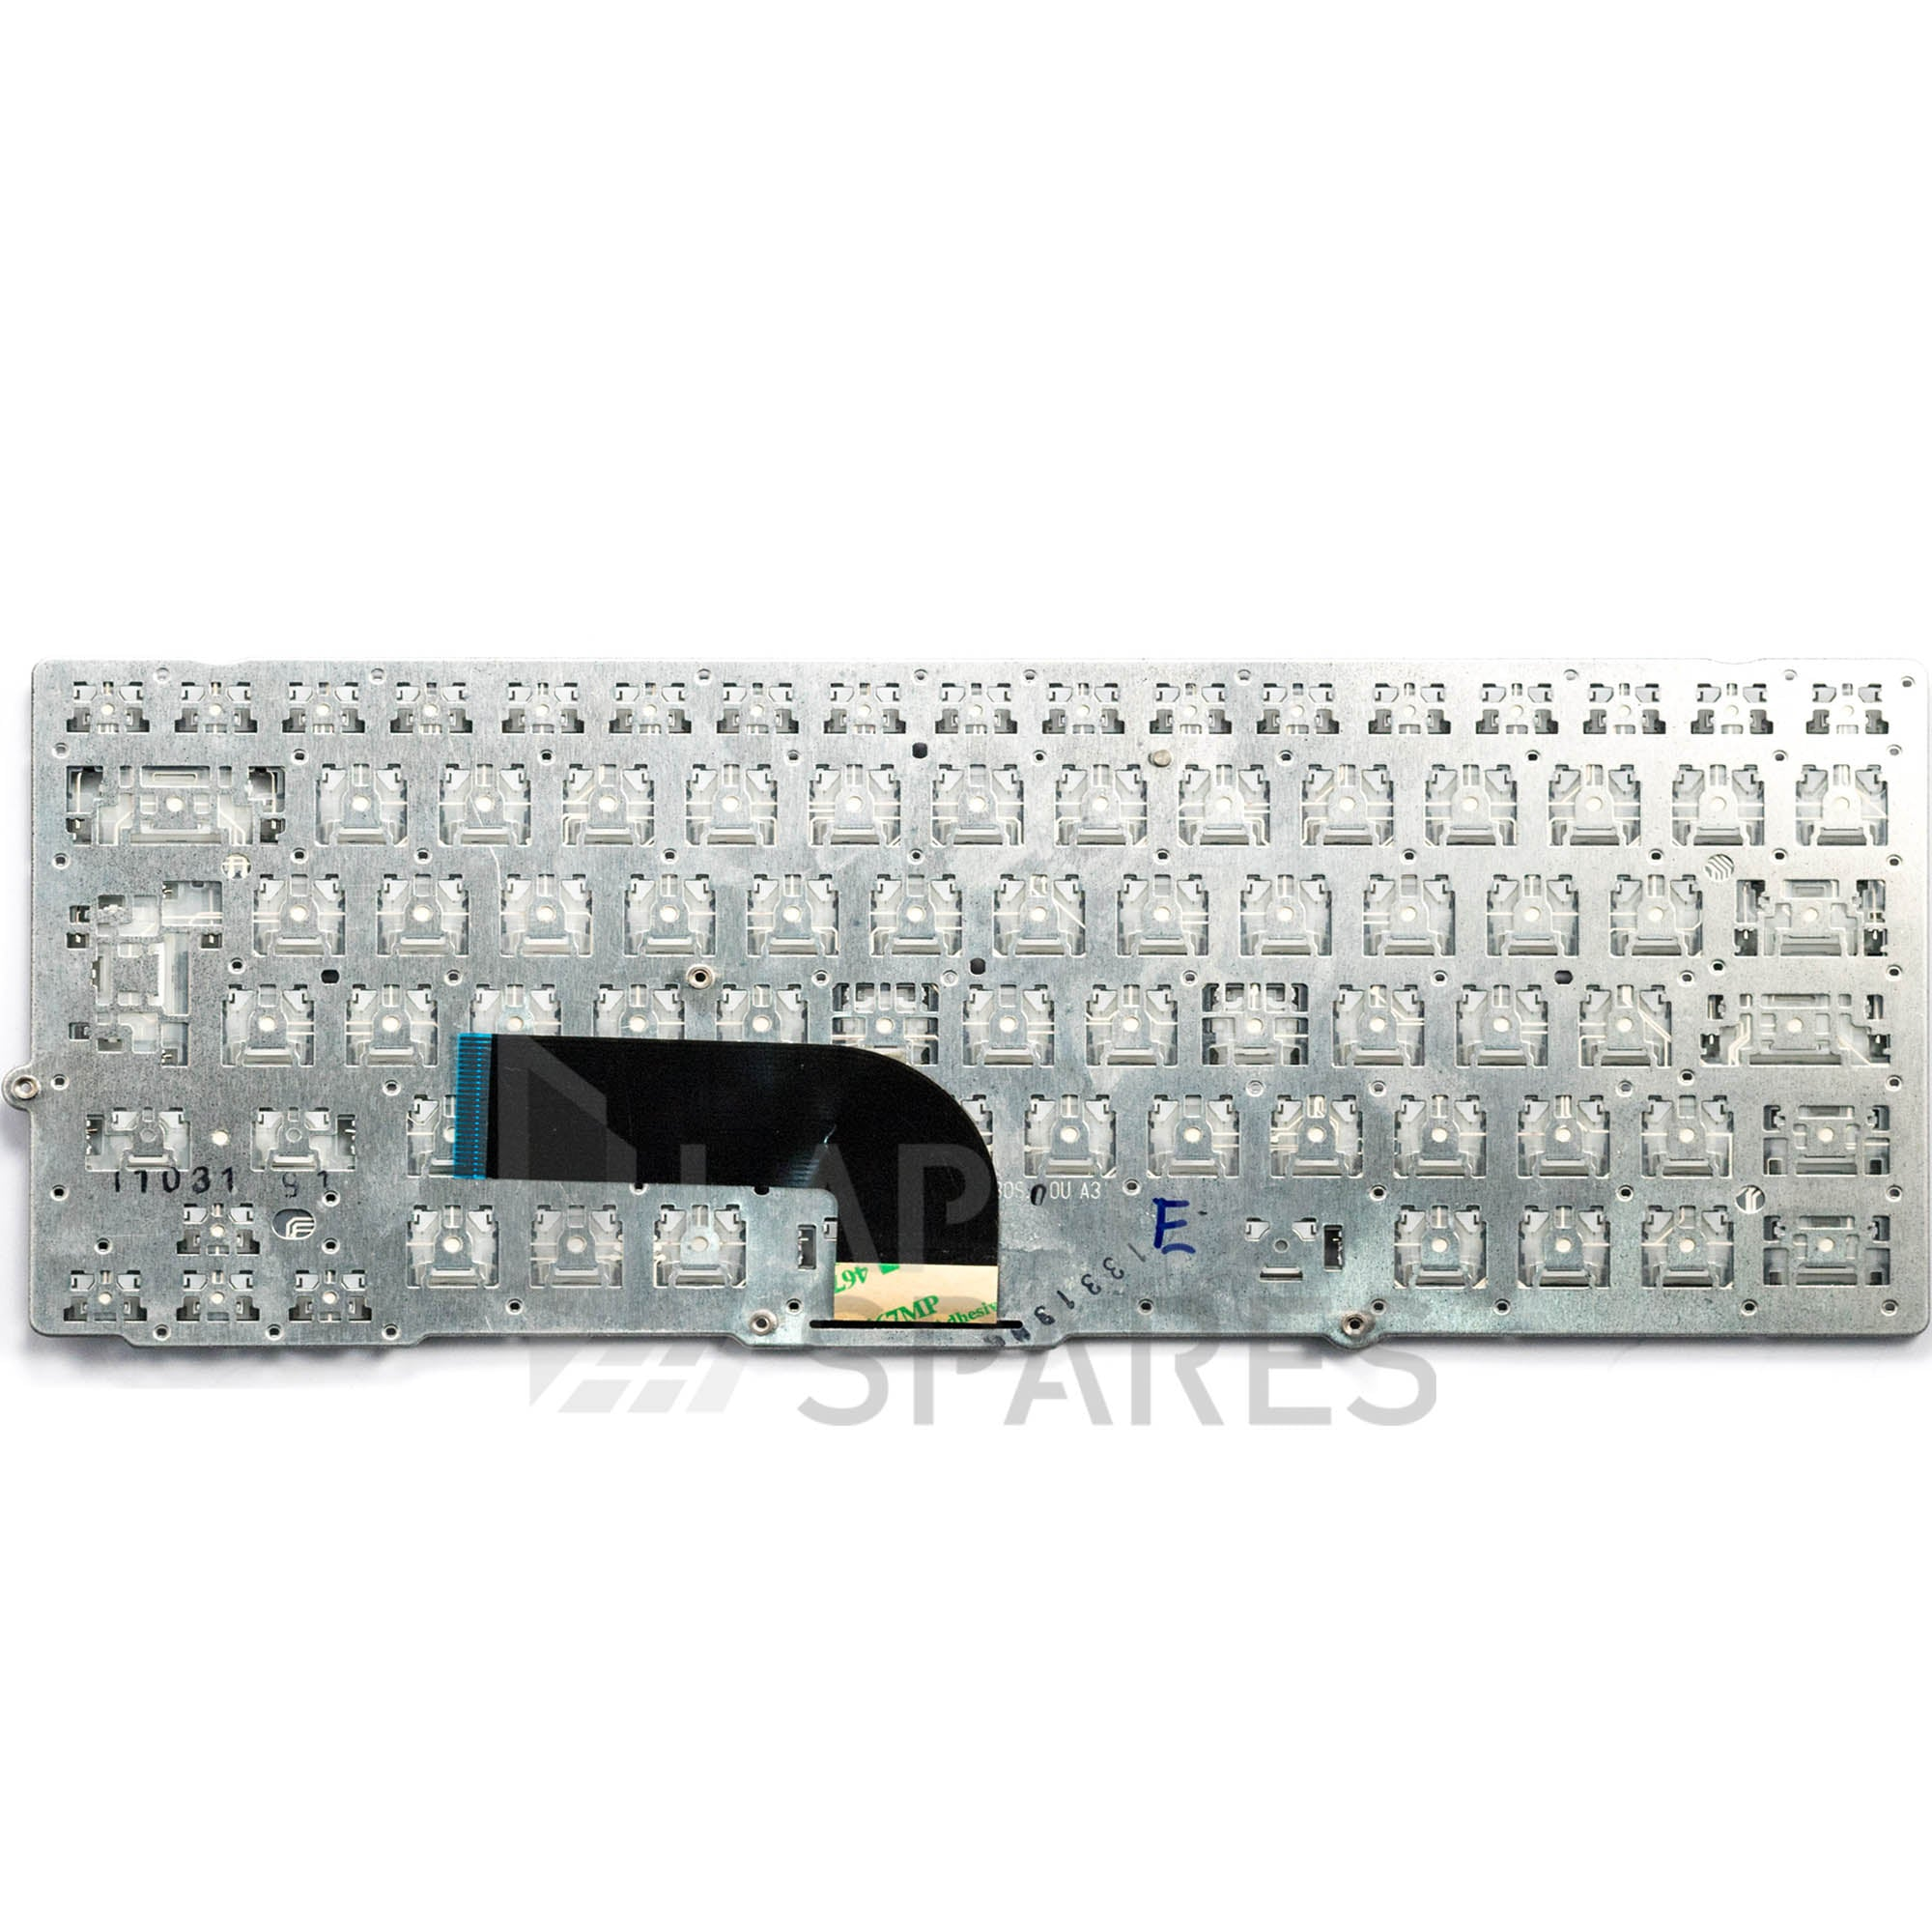 Sony Vaio VPC SA Without Frame 148949781 Laptop Keyboard